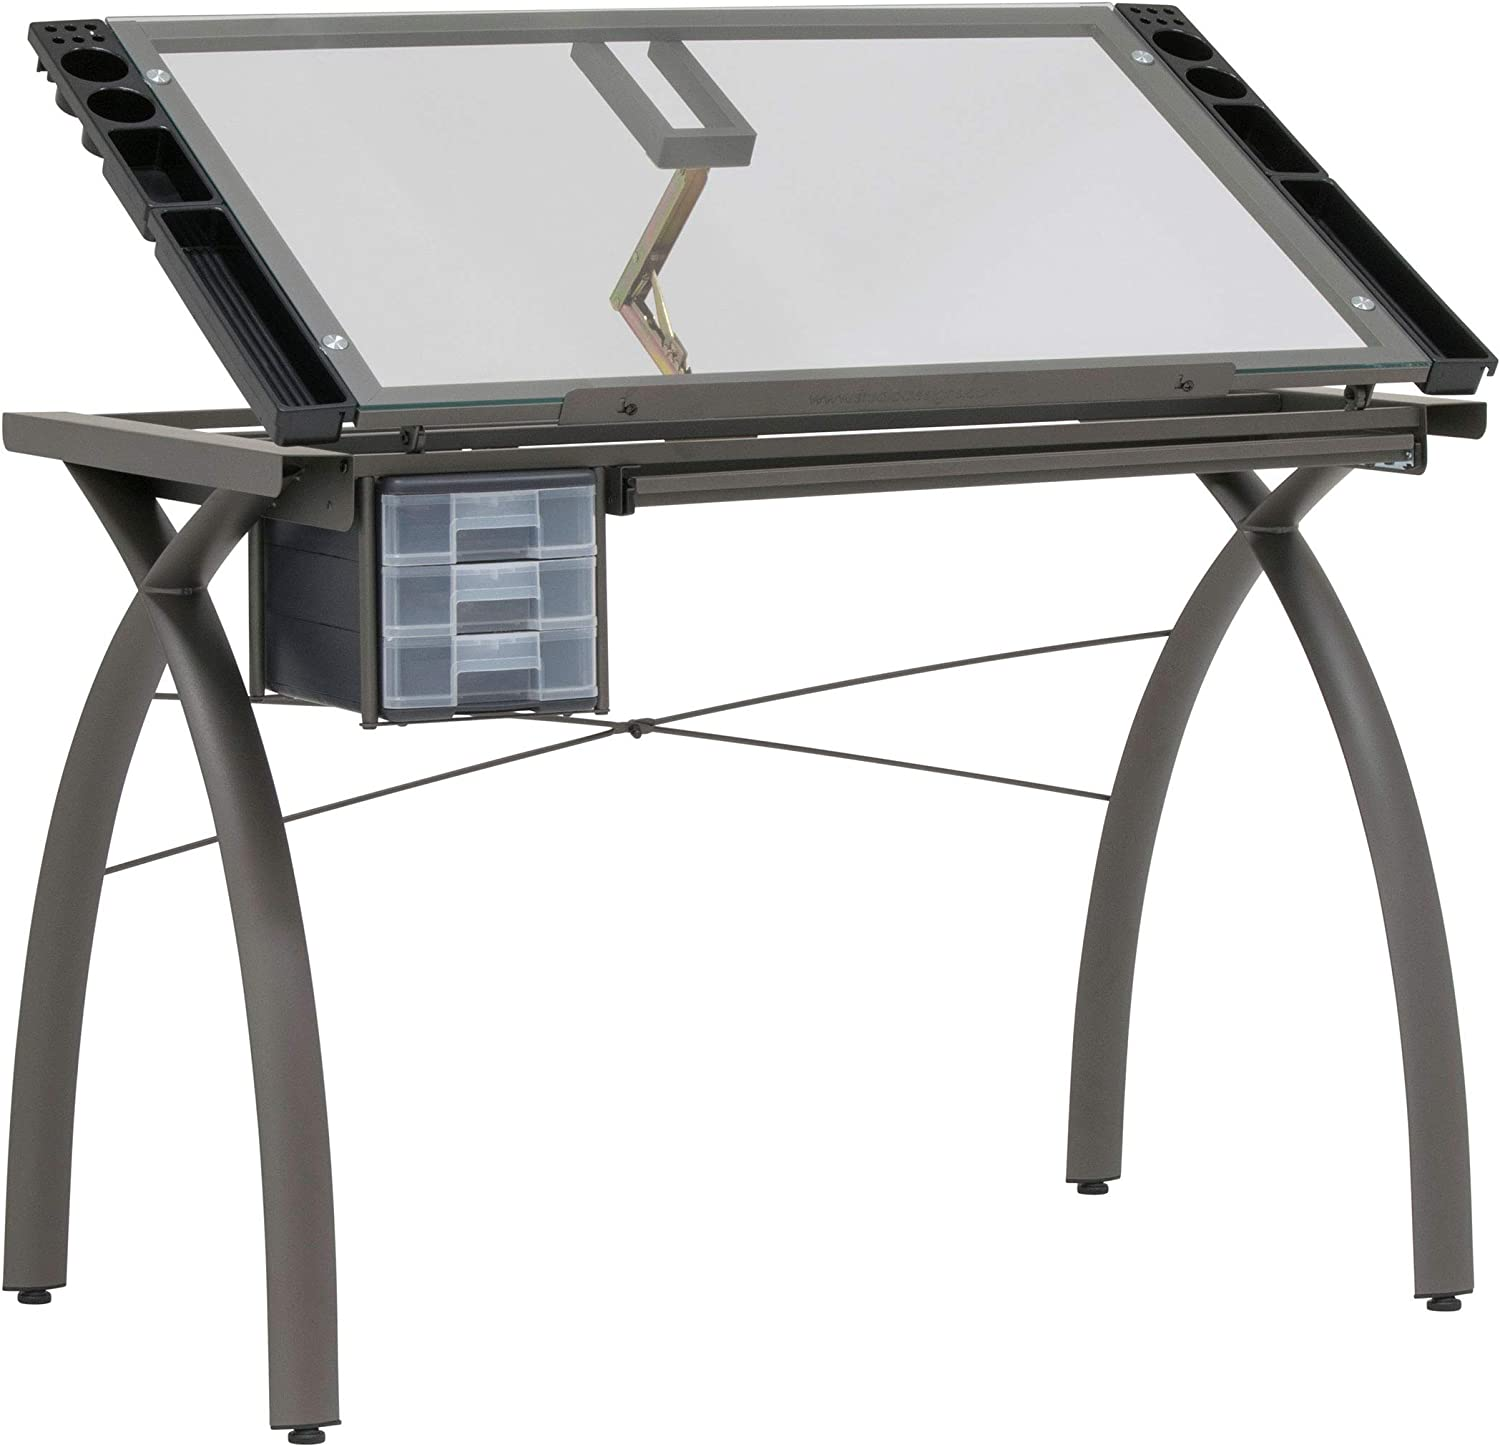 Studio Designs Futura 38013 Metal and Glass Hobby Desk in Pewter   Clear Glass